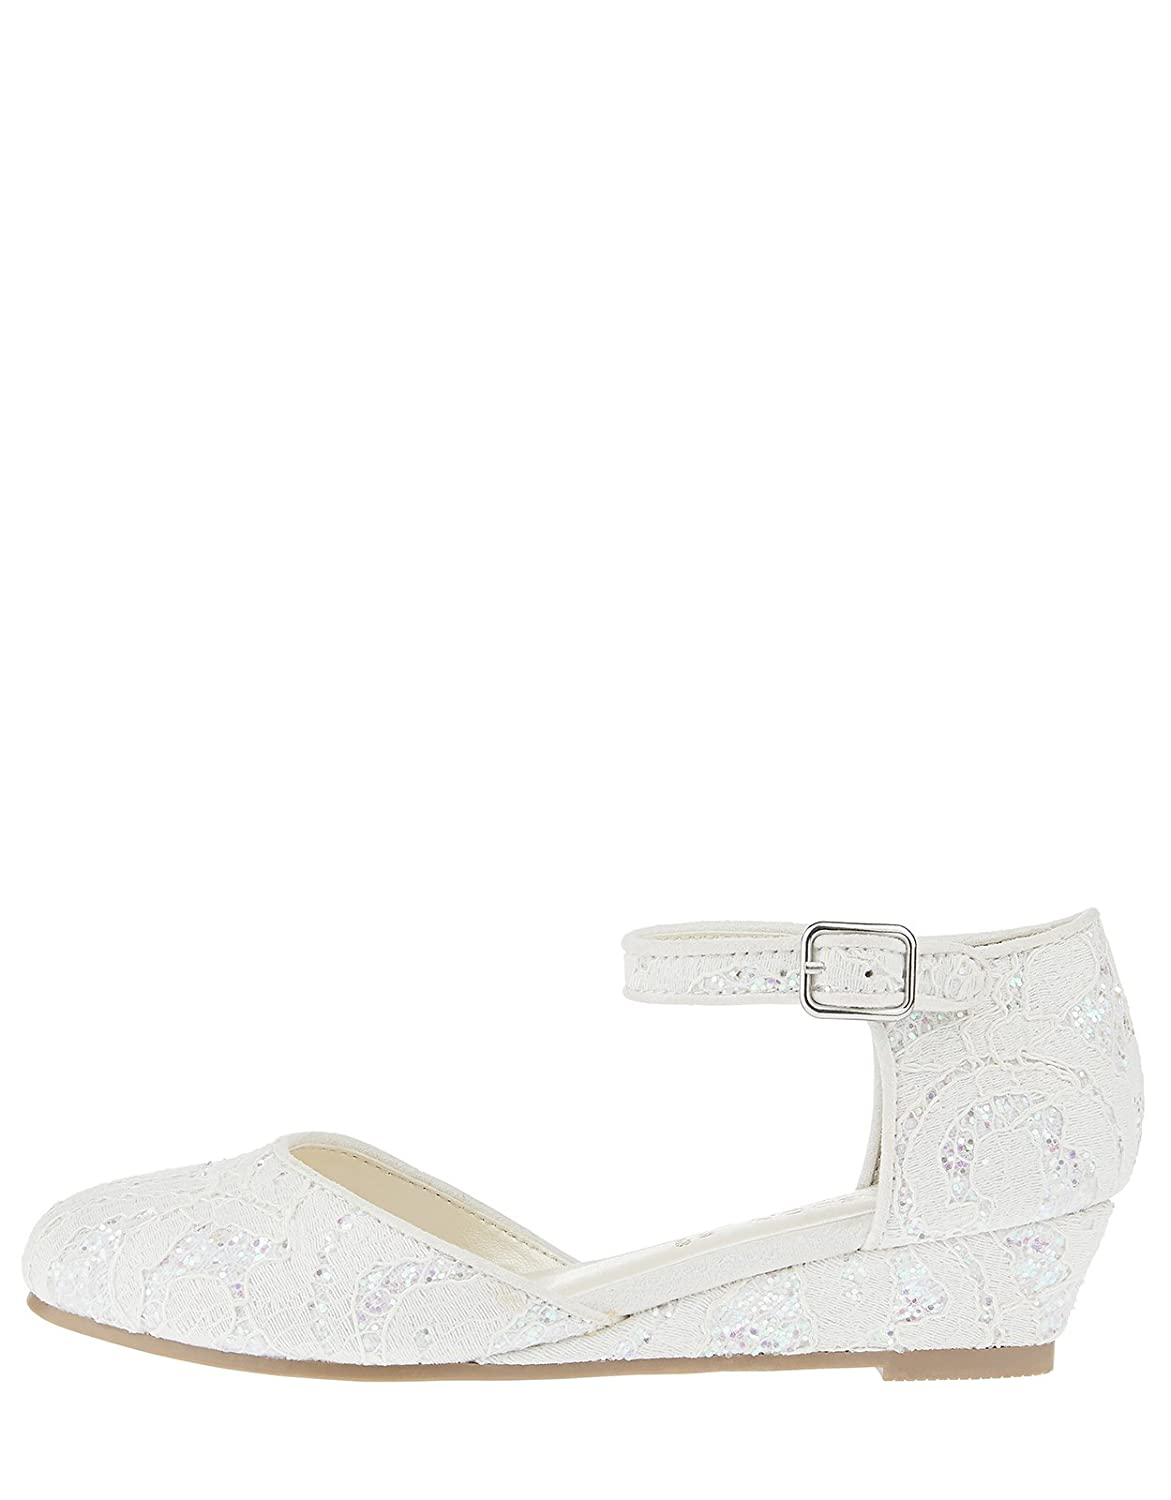 e3d64a3d7 Accessorize Crystal Iridescent Lace Wedge Shoes - Girls